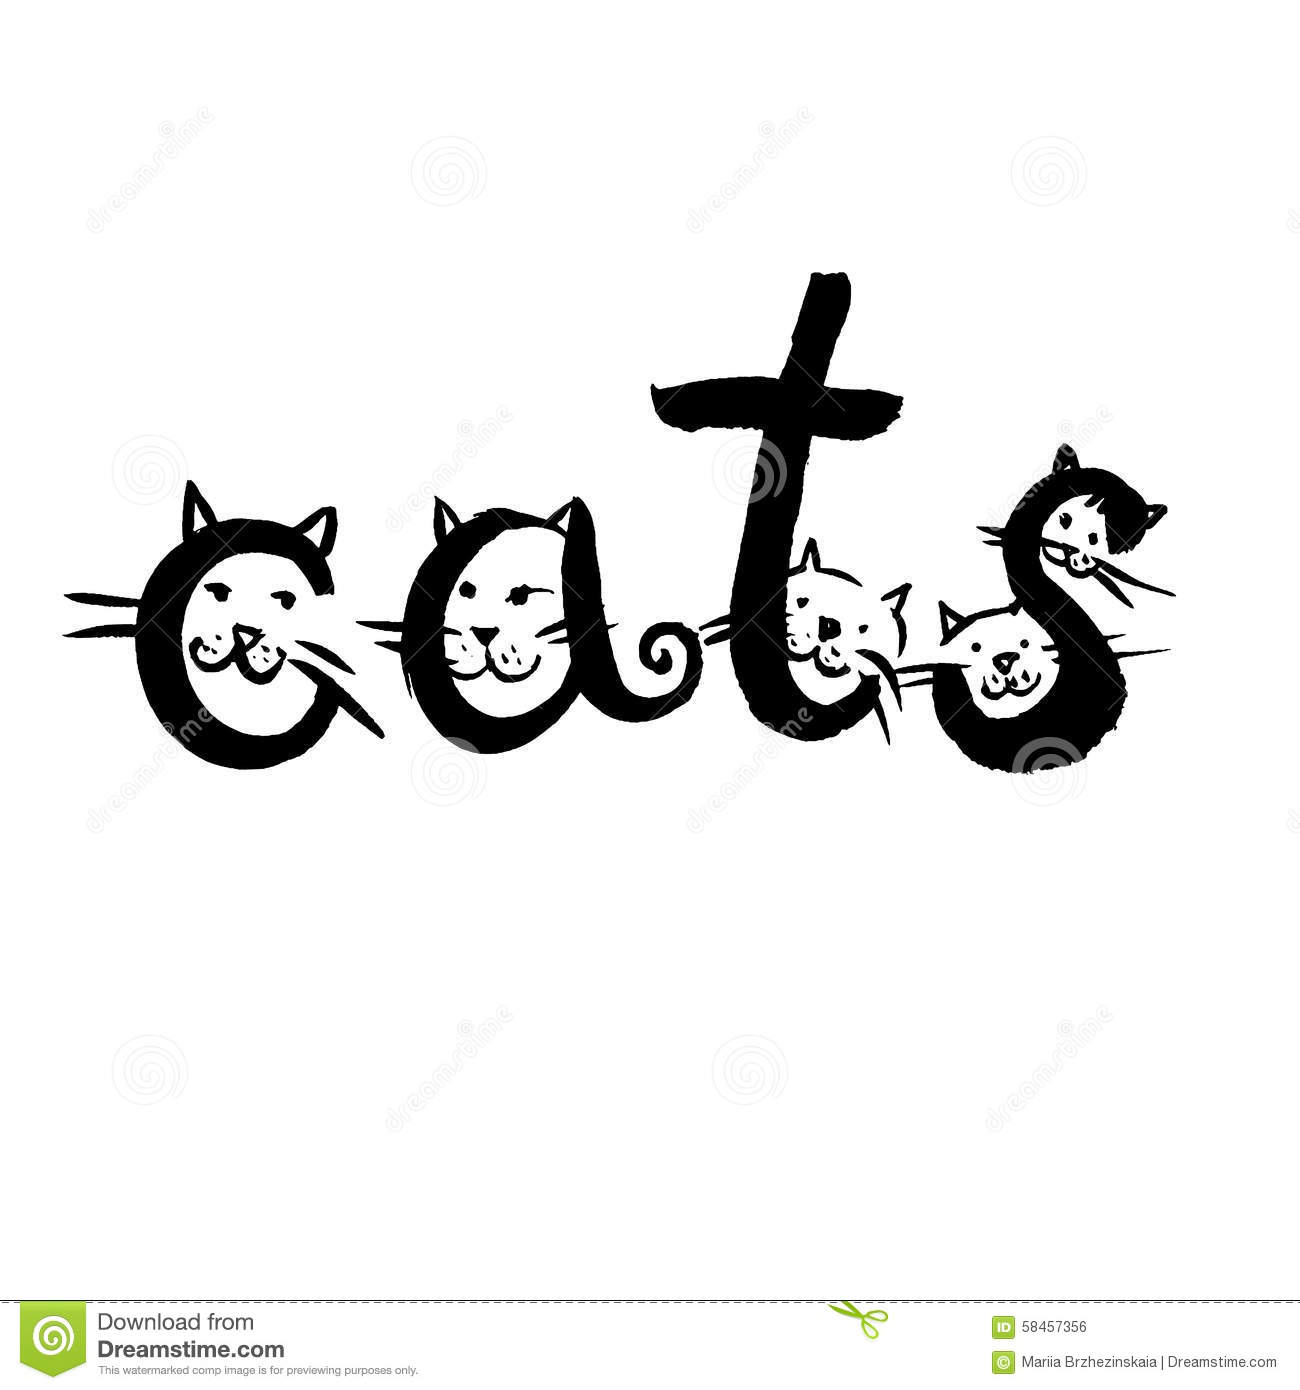 cats in word